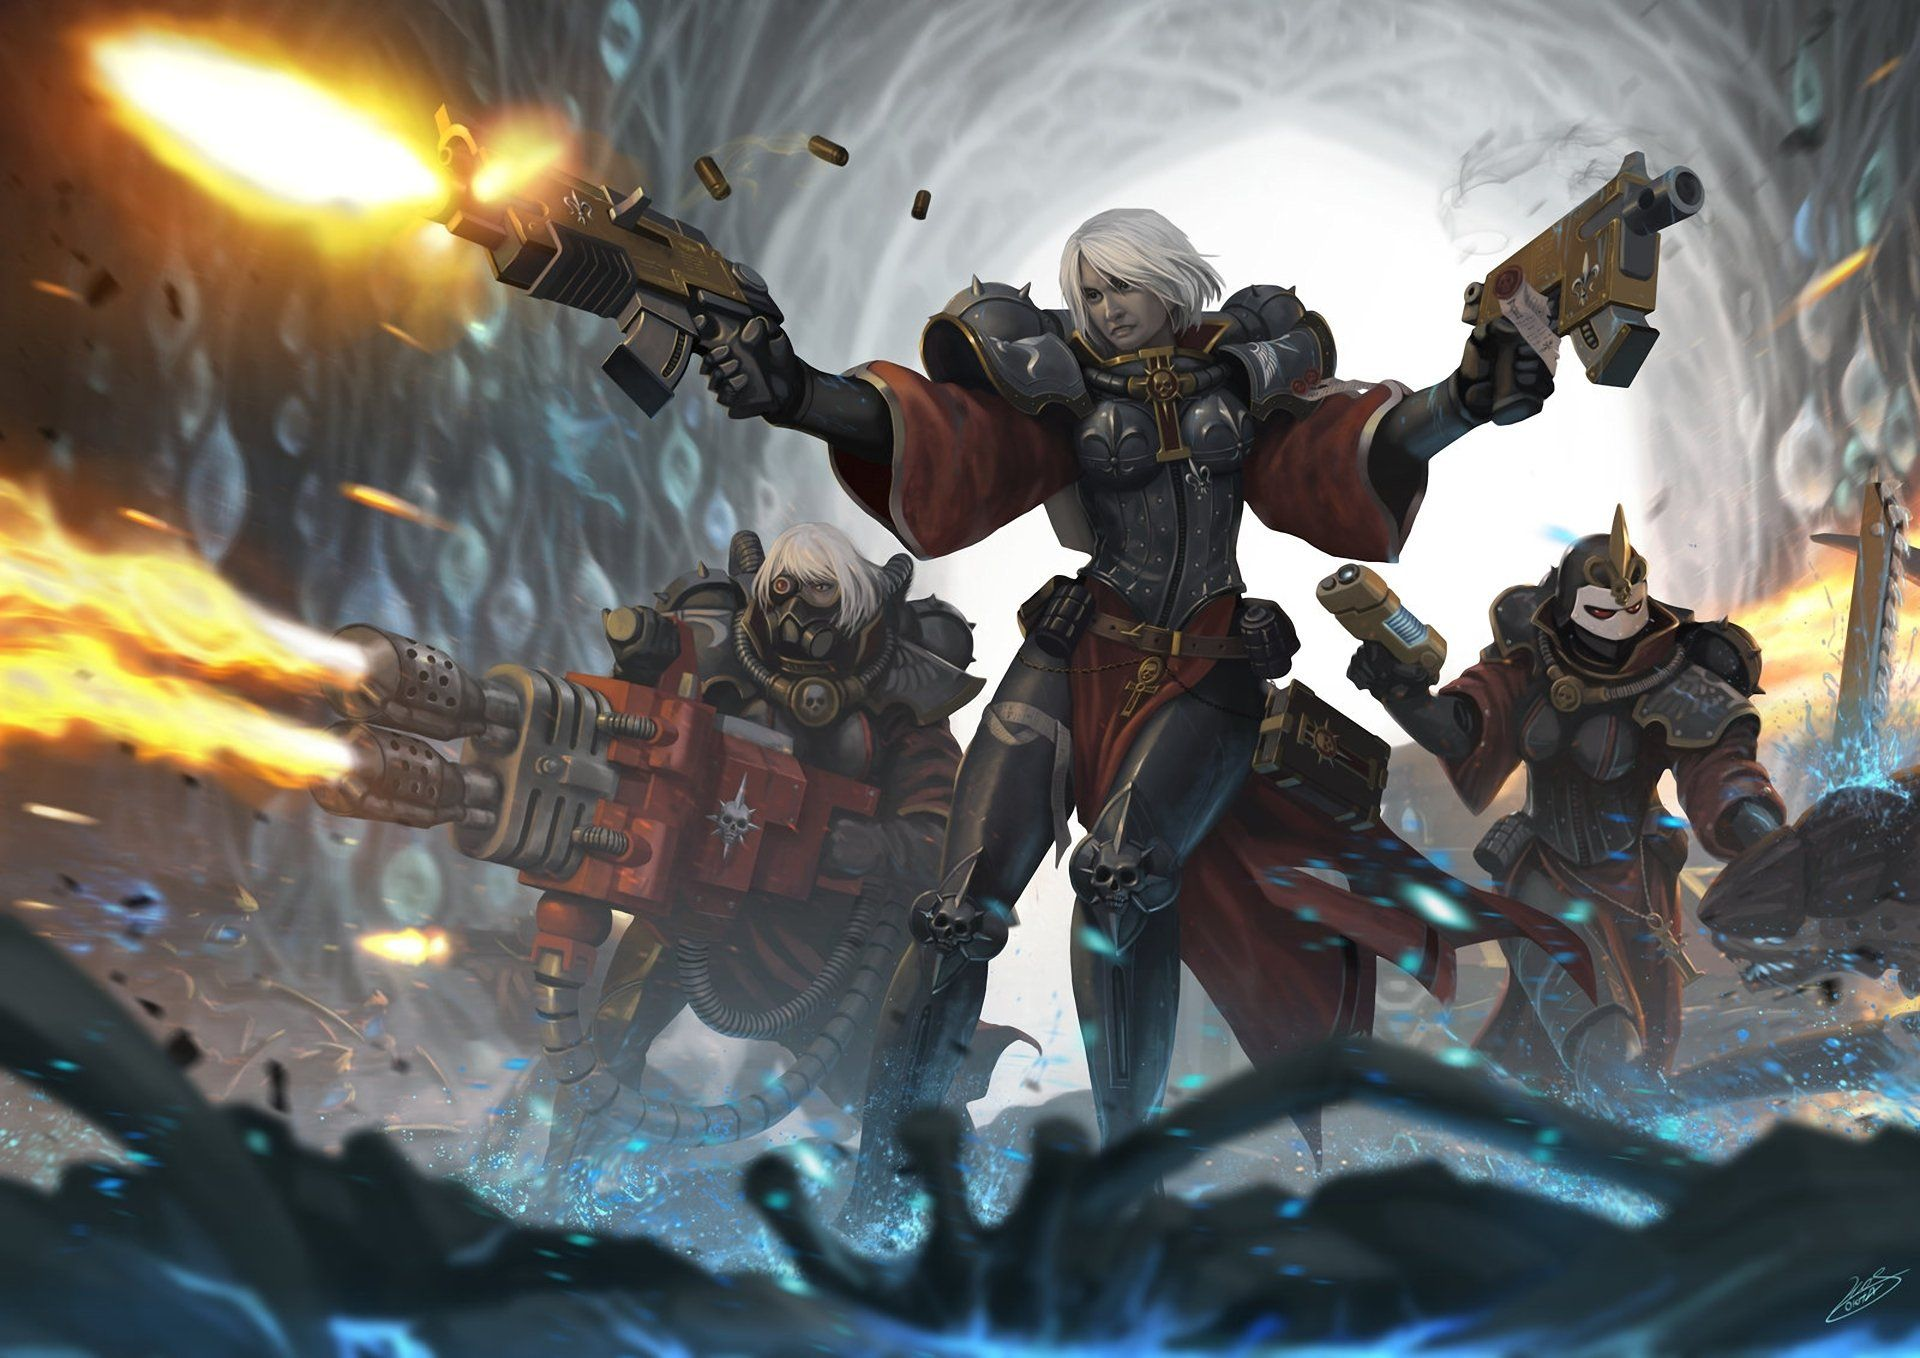 Pin By Robert Mcneill On Sci Fi Horror Quotes Etc 2 Warhammer 40k Warhammer 40000 40k Sisters Of Battle